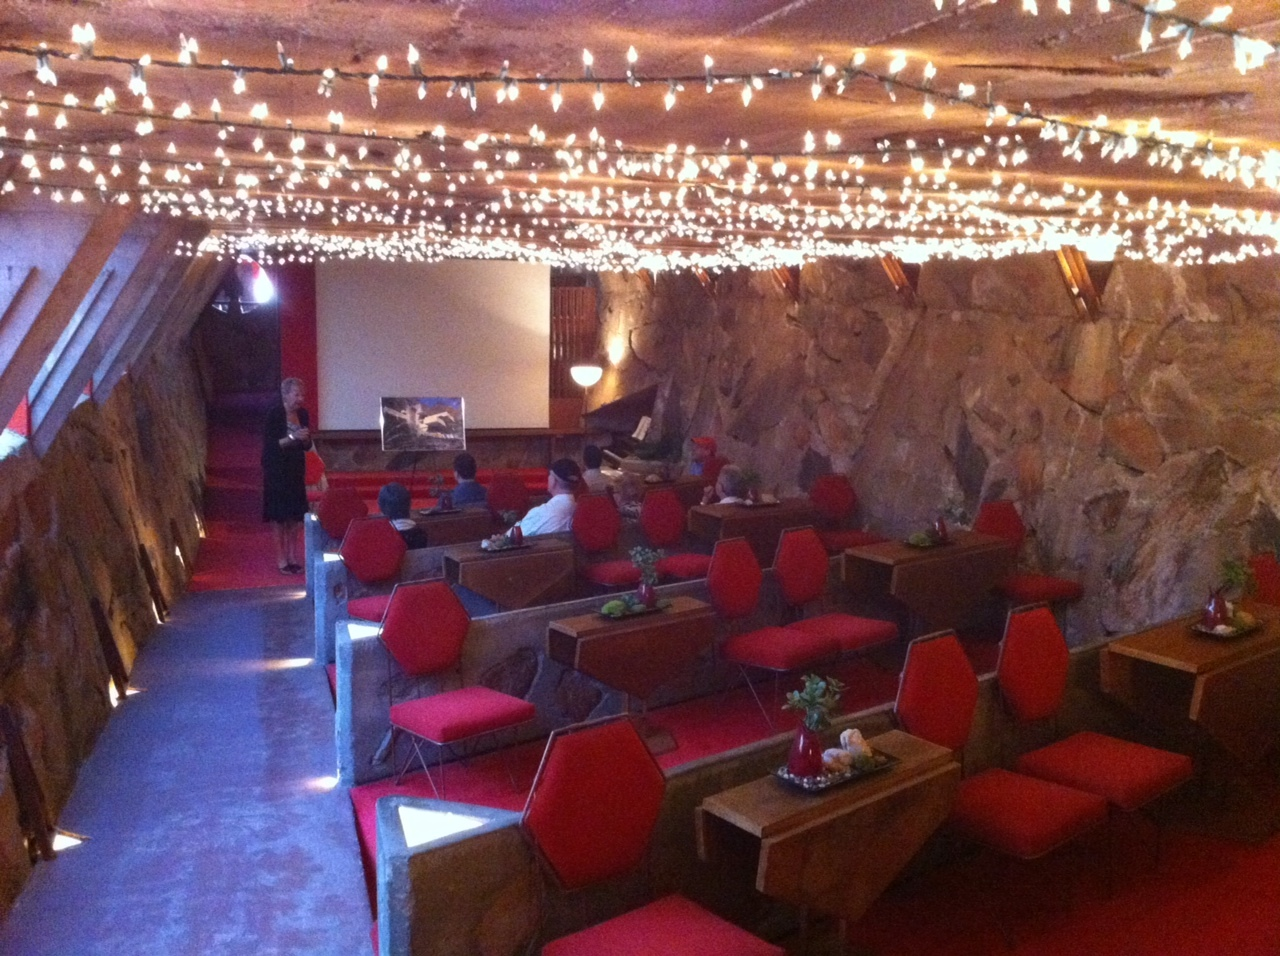 The Cabaret room was designed to allow for flexible seating, near perfect sight lines and great acoustics. Wright owned nine pianos and if hadn't become an architect he would have chosen to be a concert pianist. The ceiling twinkle lights were added after his death by his wife who thought they reminded her the night stars in the desert.